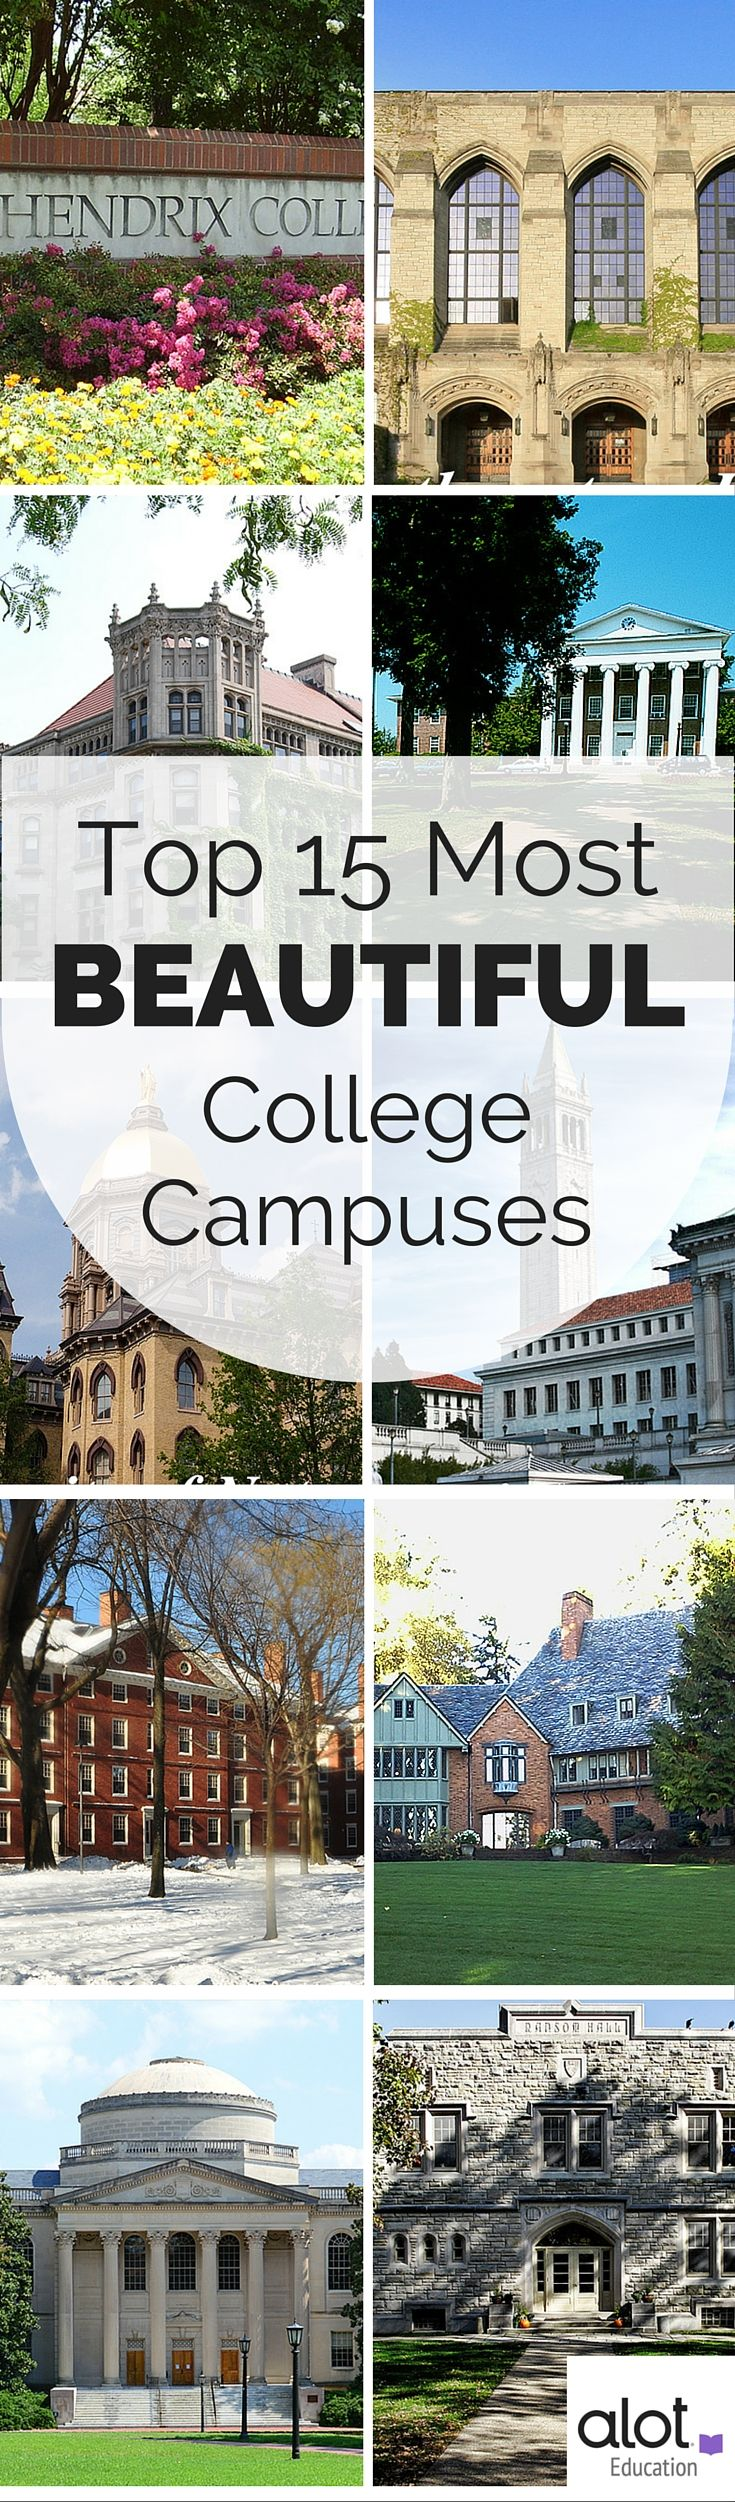 These 15 colleges go above and beyond to create an atmosphere that's as inviting as it is entrancing. Their beautiful campuses are second to none in the U.S.